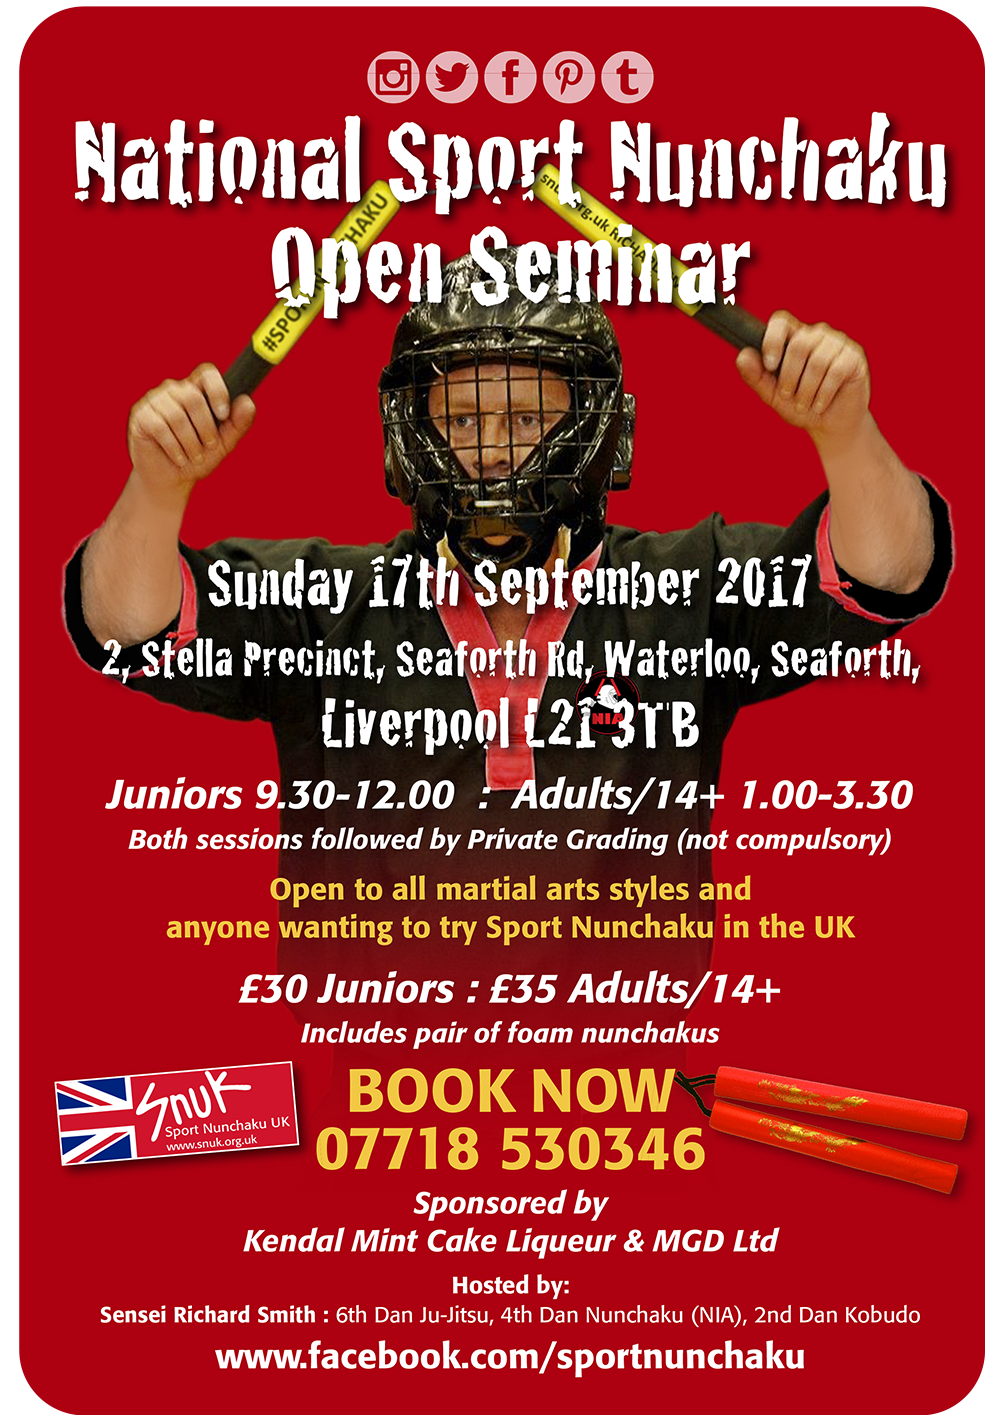 National Sport Nunchaku Open Seminar-Liverpool 2017